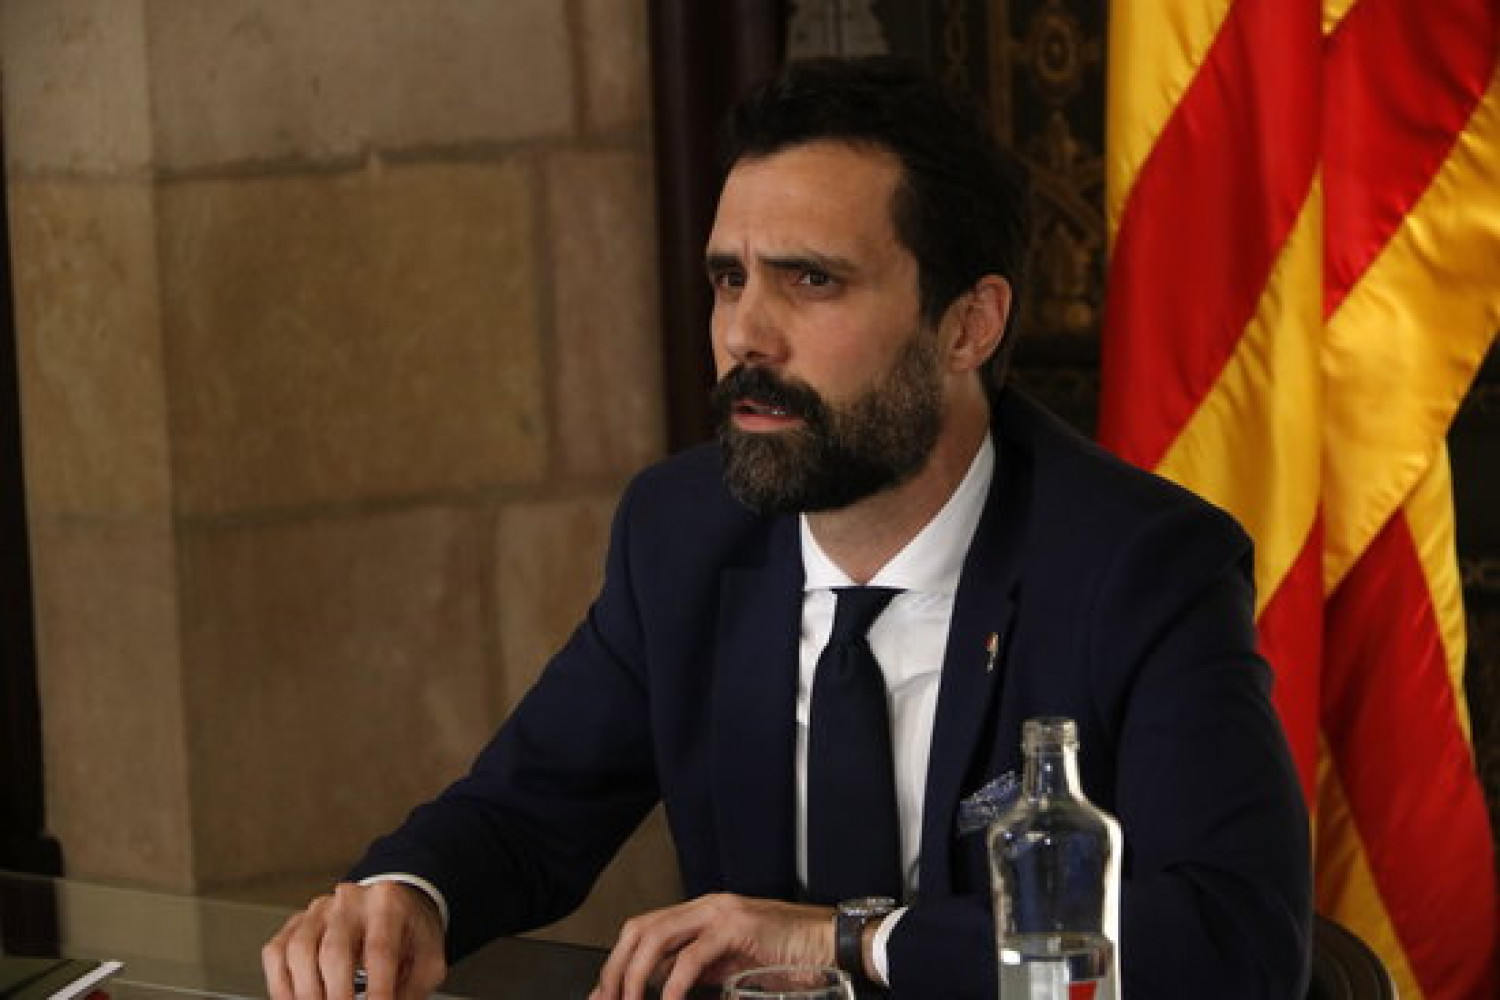 Parliament speaker Roger Torrent during an online meeting, November 30, 2020 (by Guillem Roset)